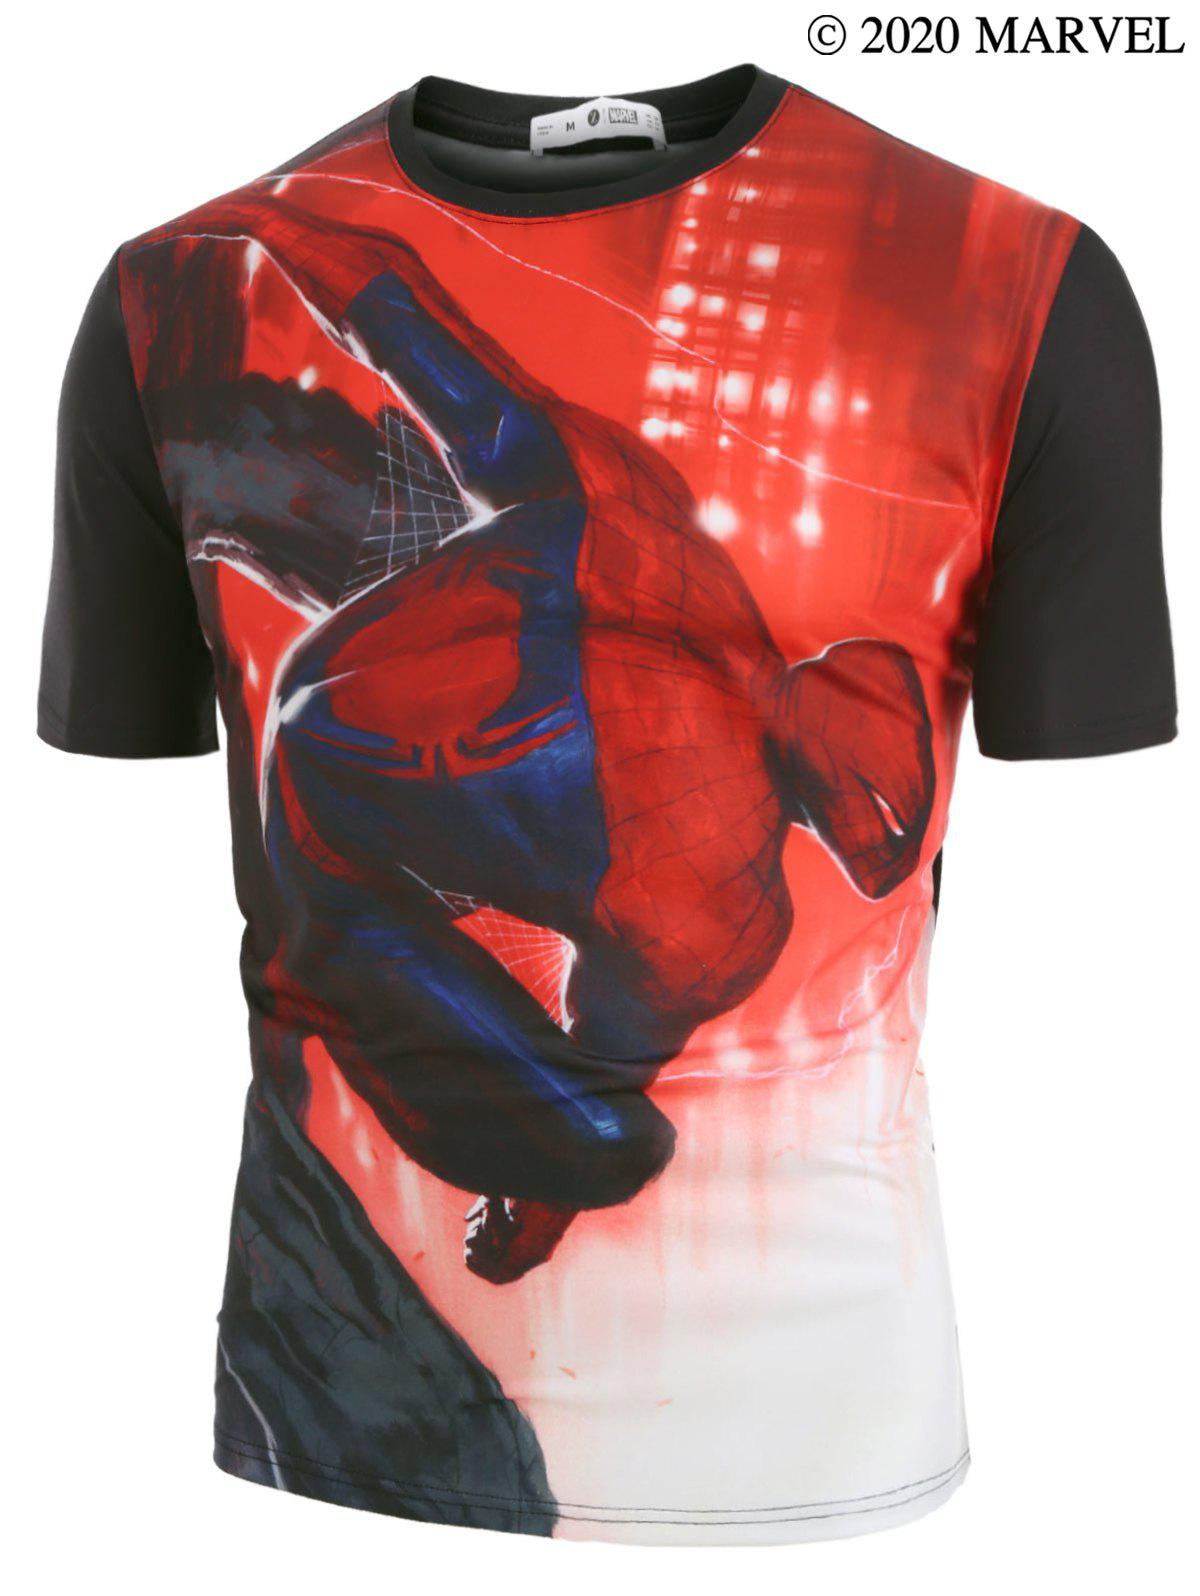 Affordable Marvel Spider-Man Print Short Sleeve T-shirt